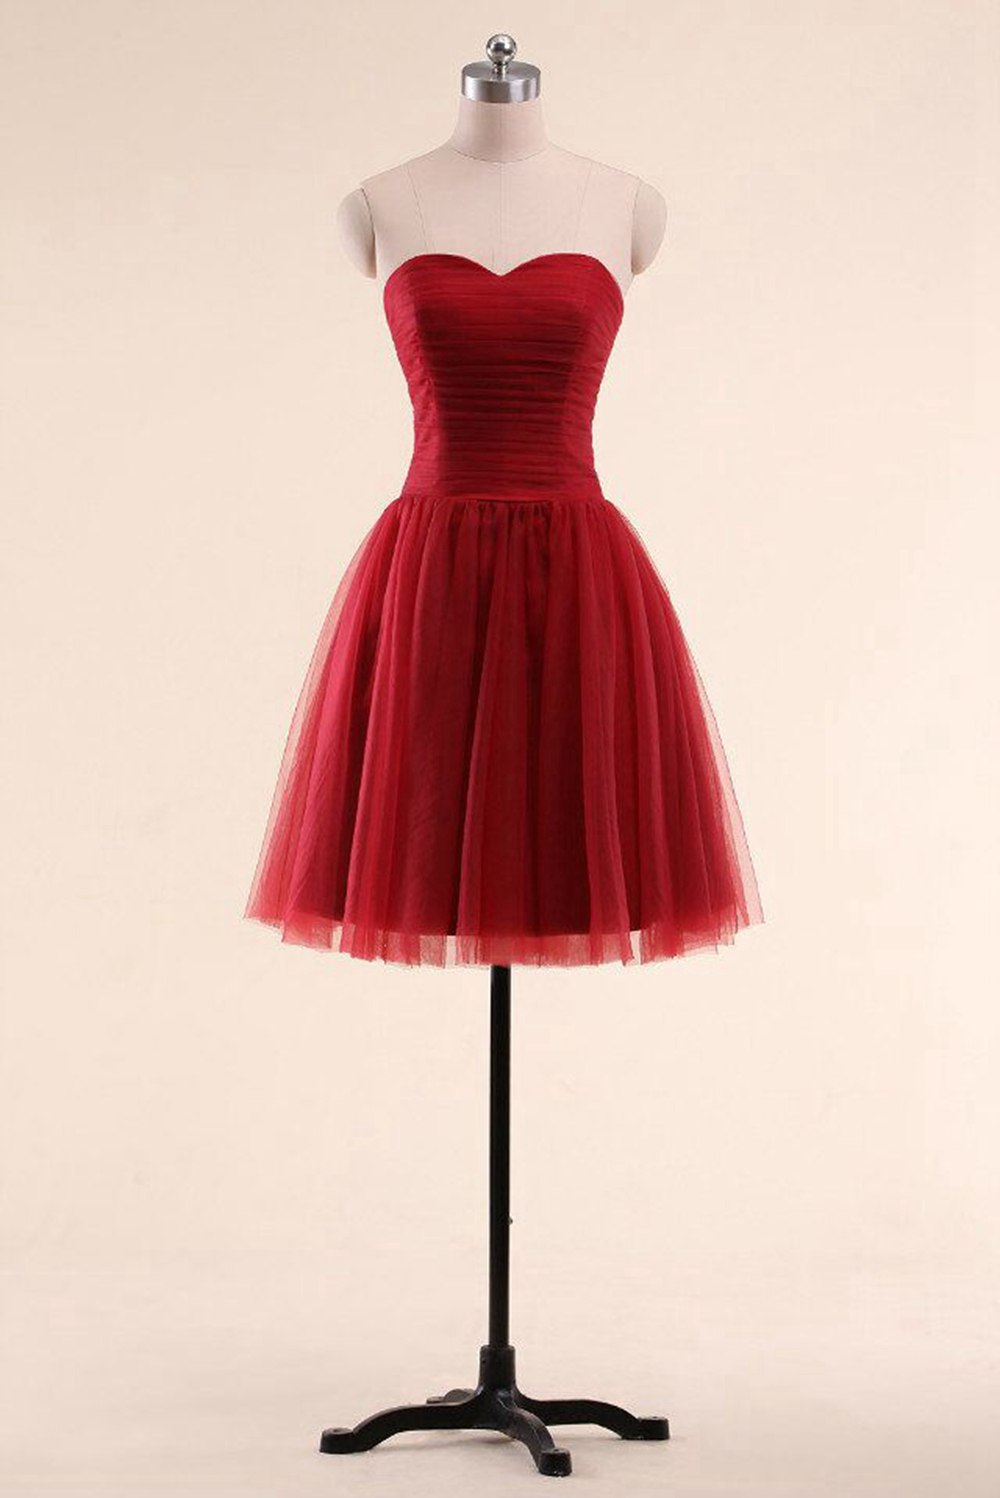 Women Burgundy Sweetheart Cocktail Gown Backless Lace up Homecoming Dresses A Line Ribbon Bow Elegant Short Party Dress in Cocktail Dresses from Weddings Events